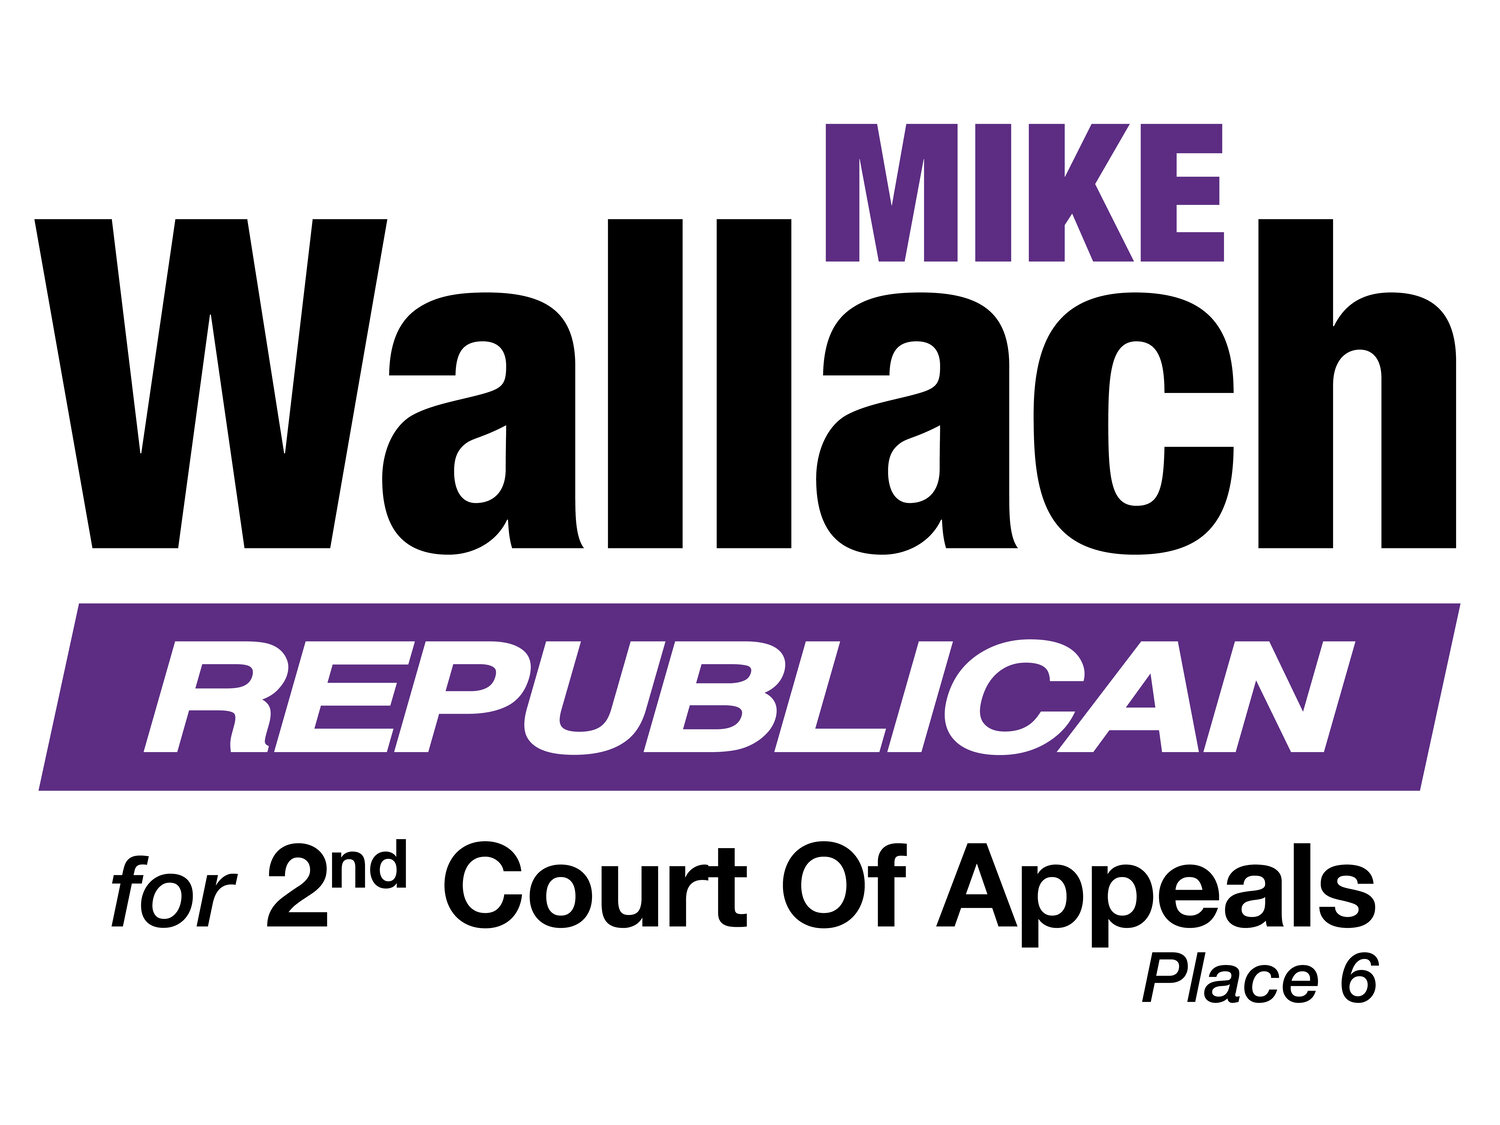 Mike Wallach, Second Court of Appeals